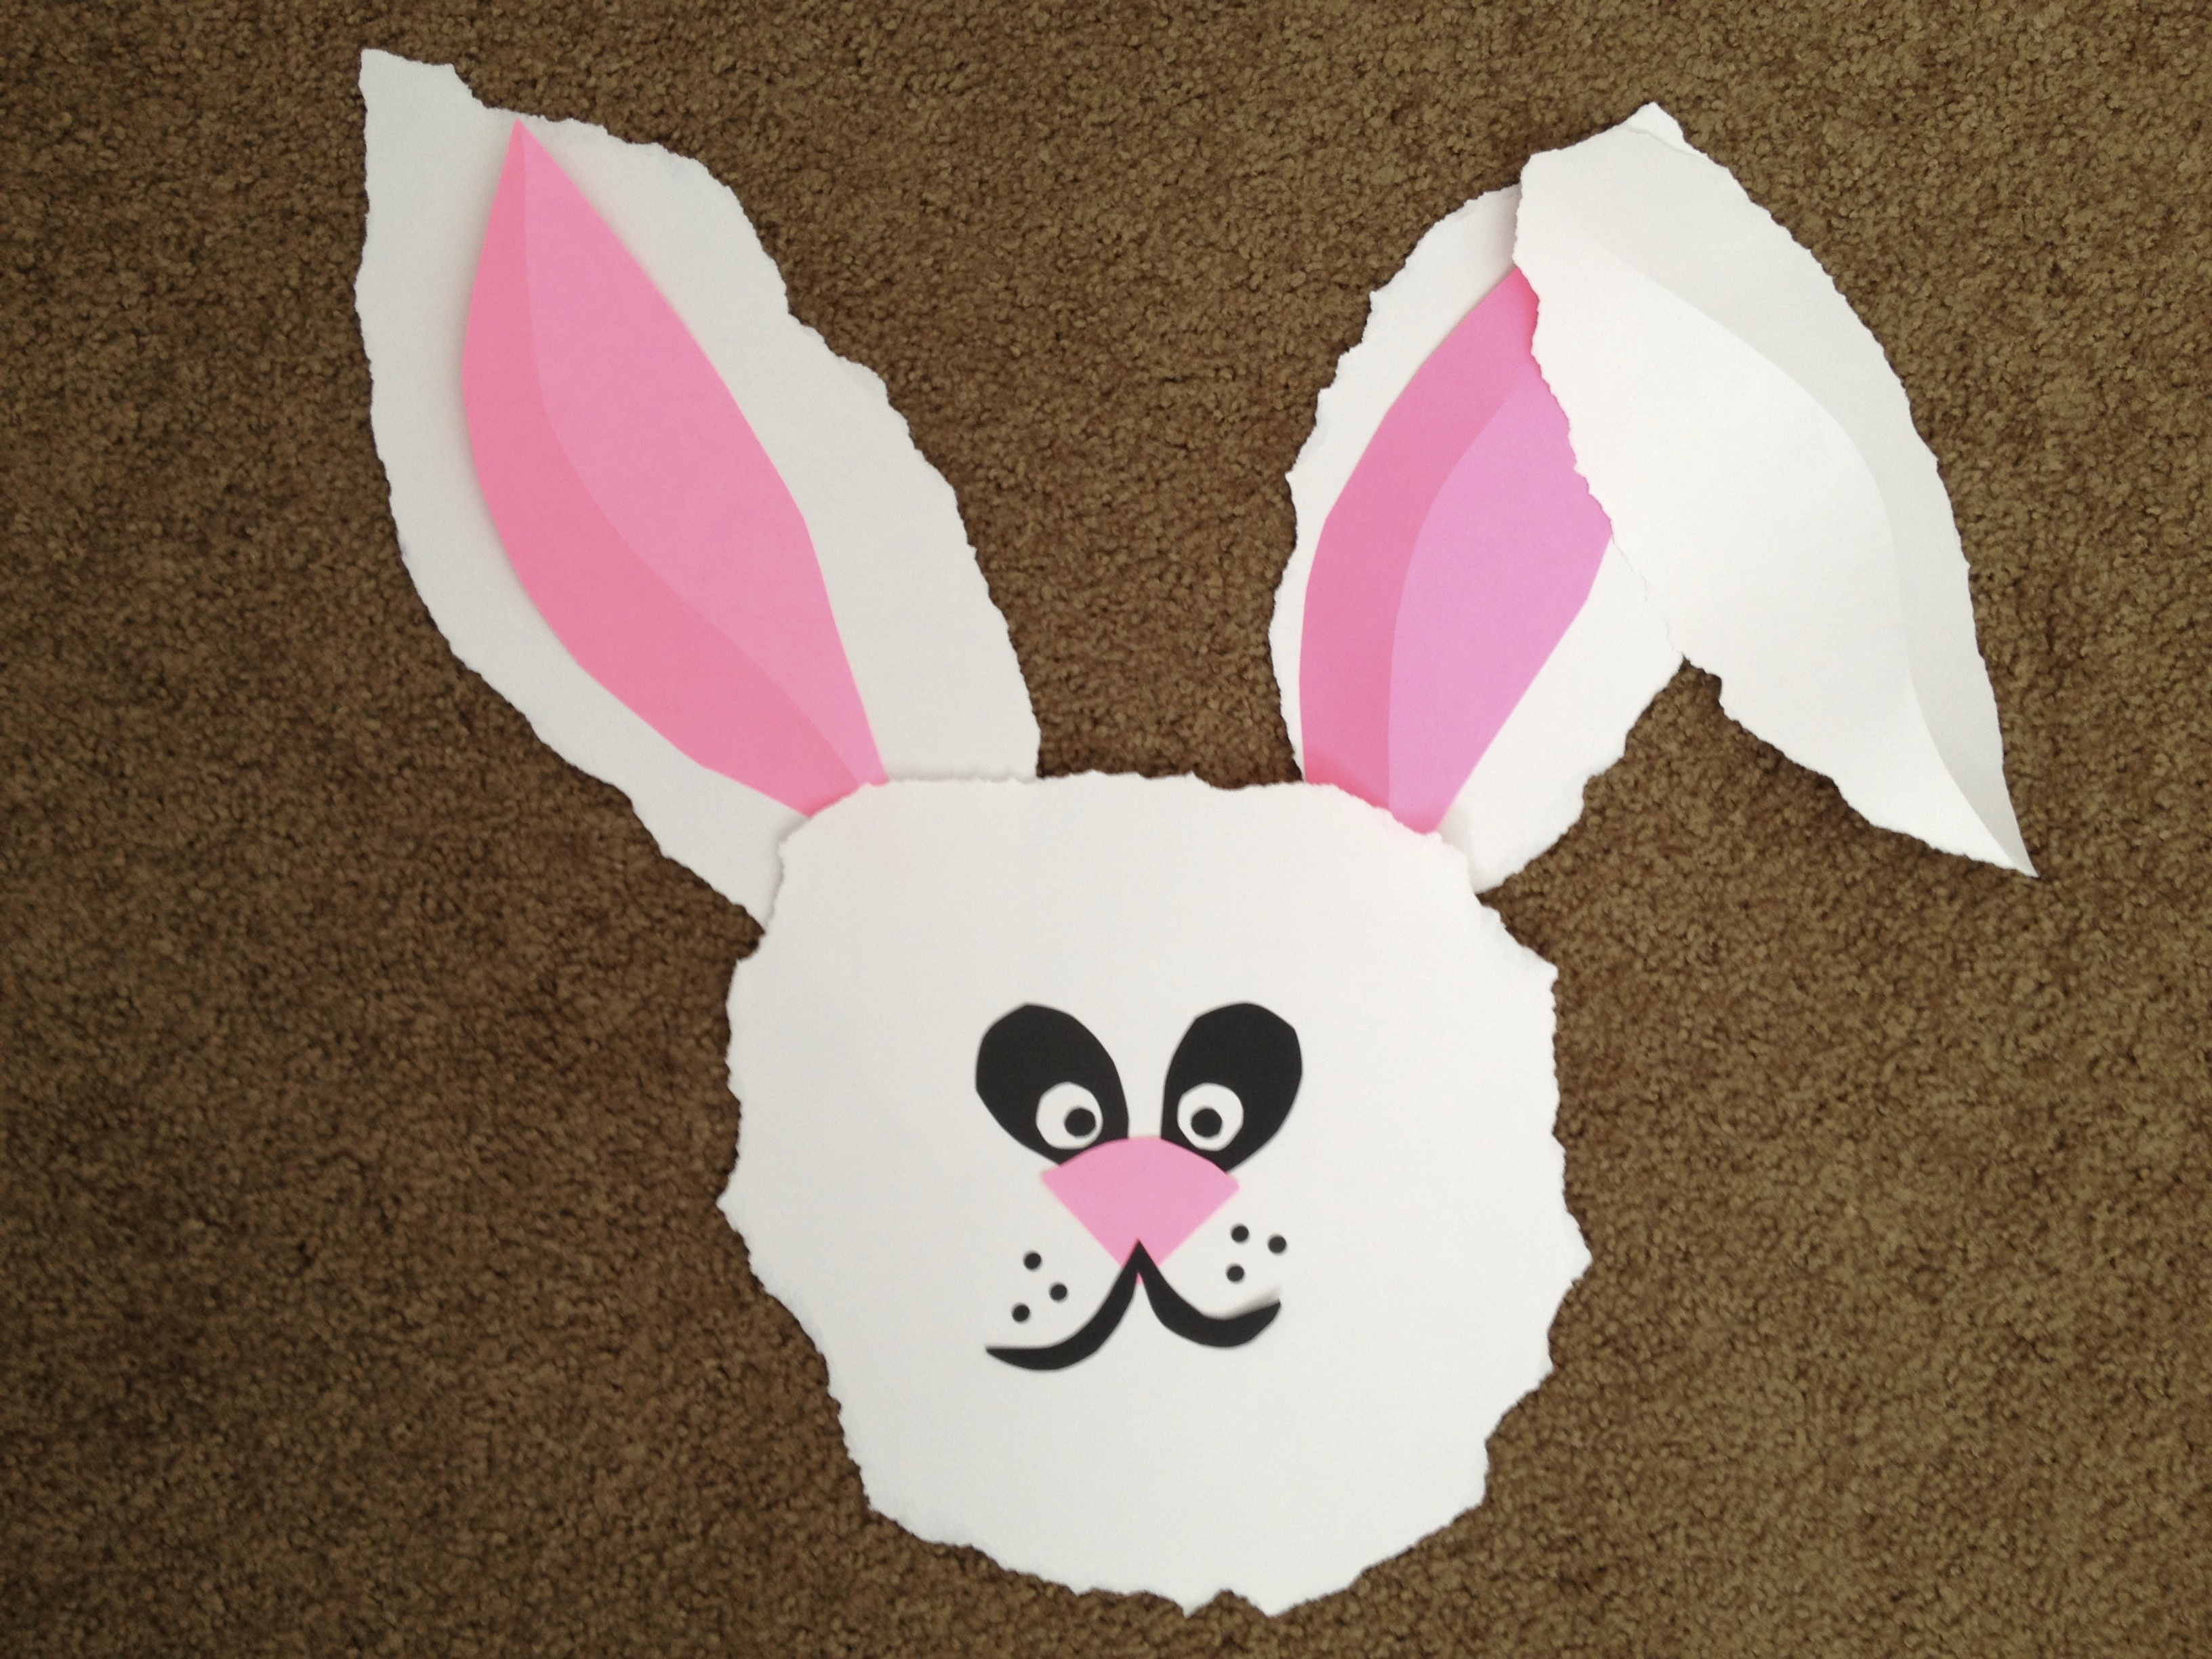 Classroom Decor For Teachers ~ Spring art lesson idea torn paper bunny for